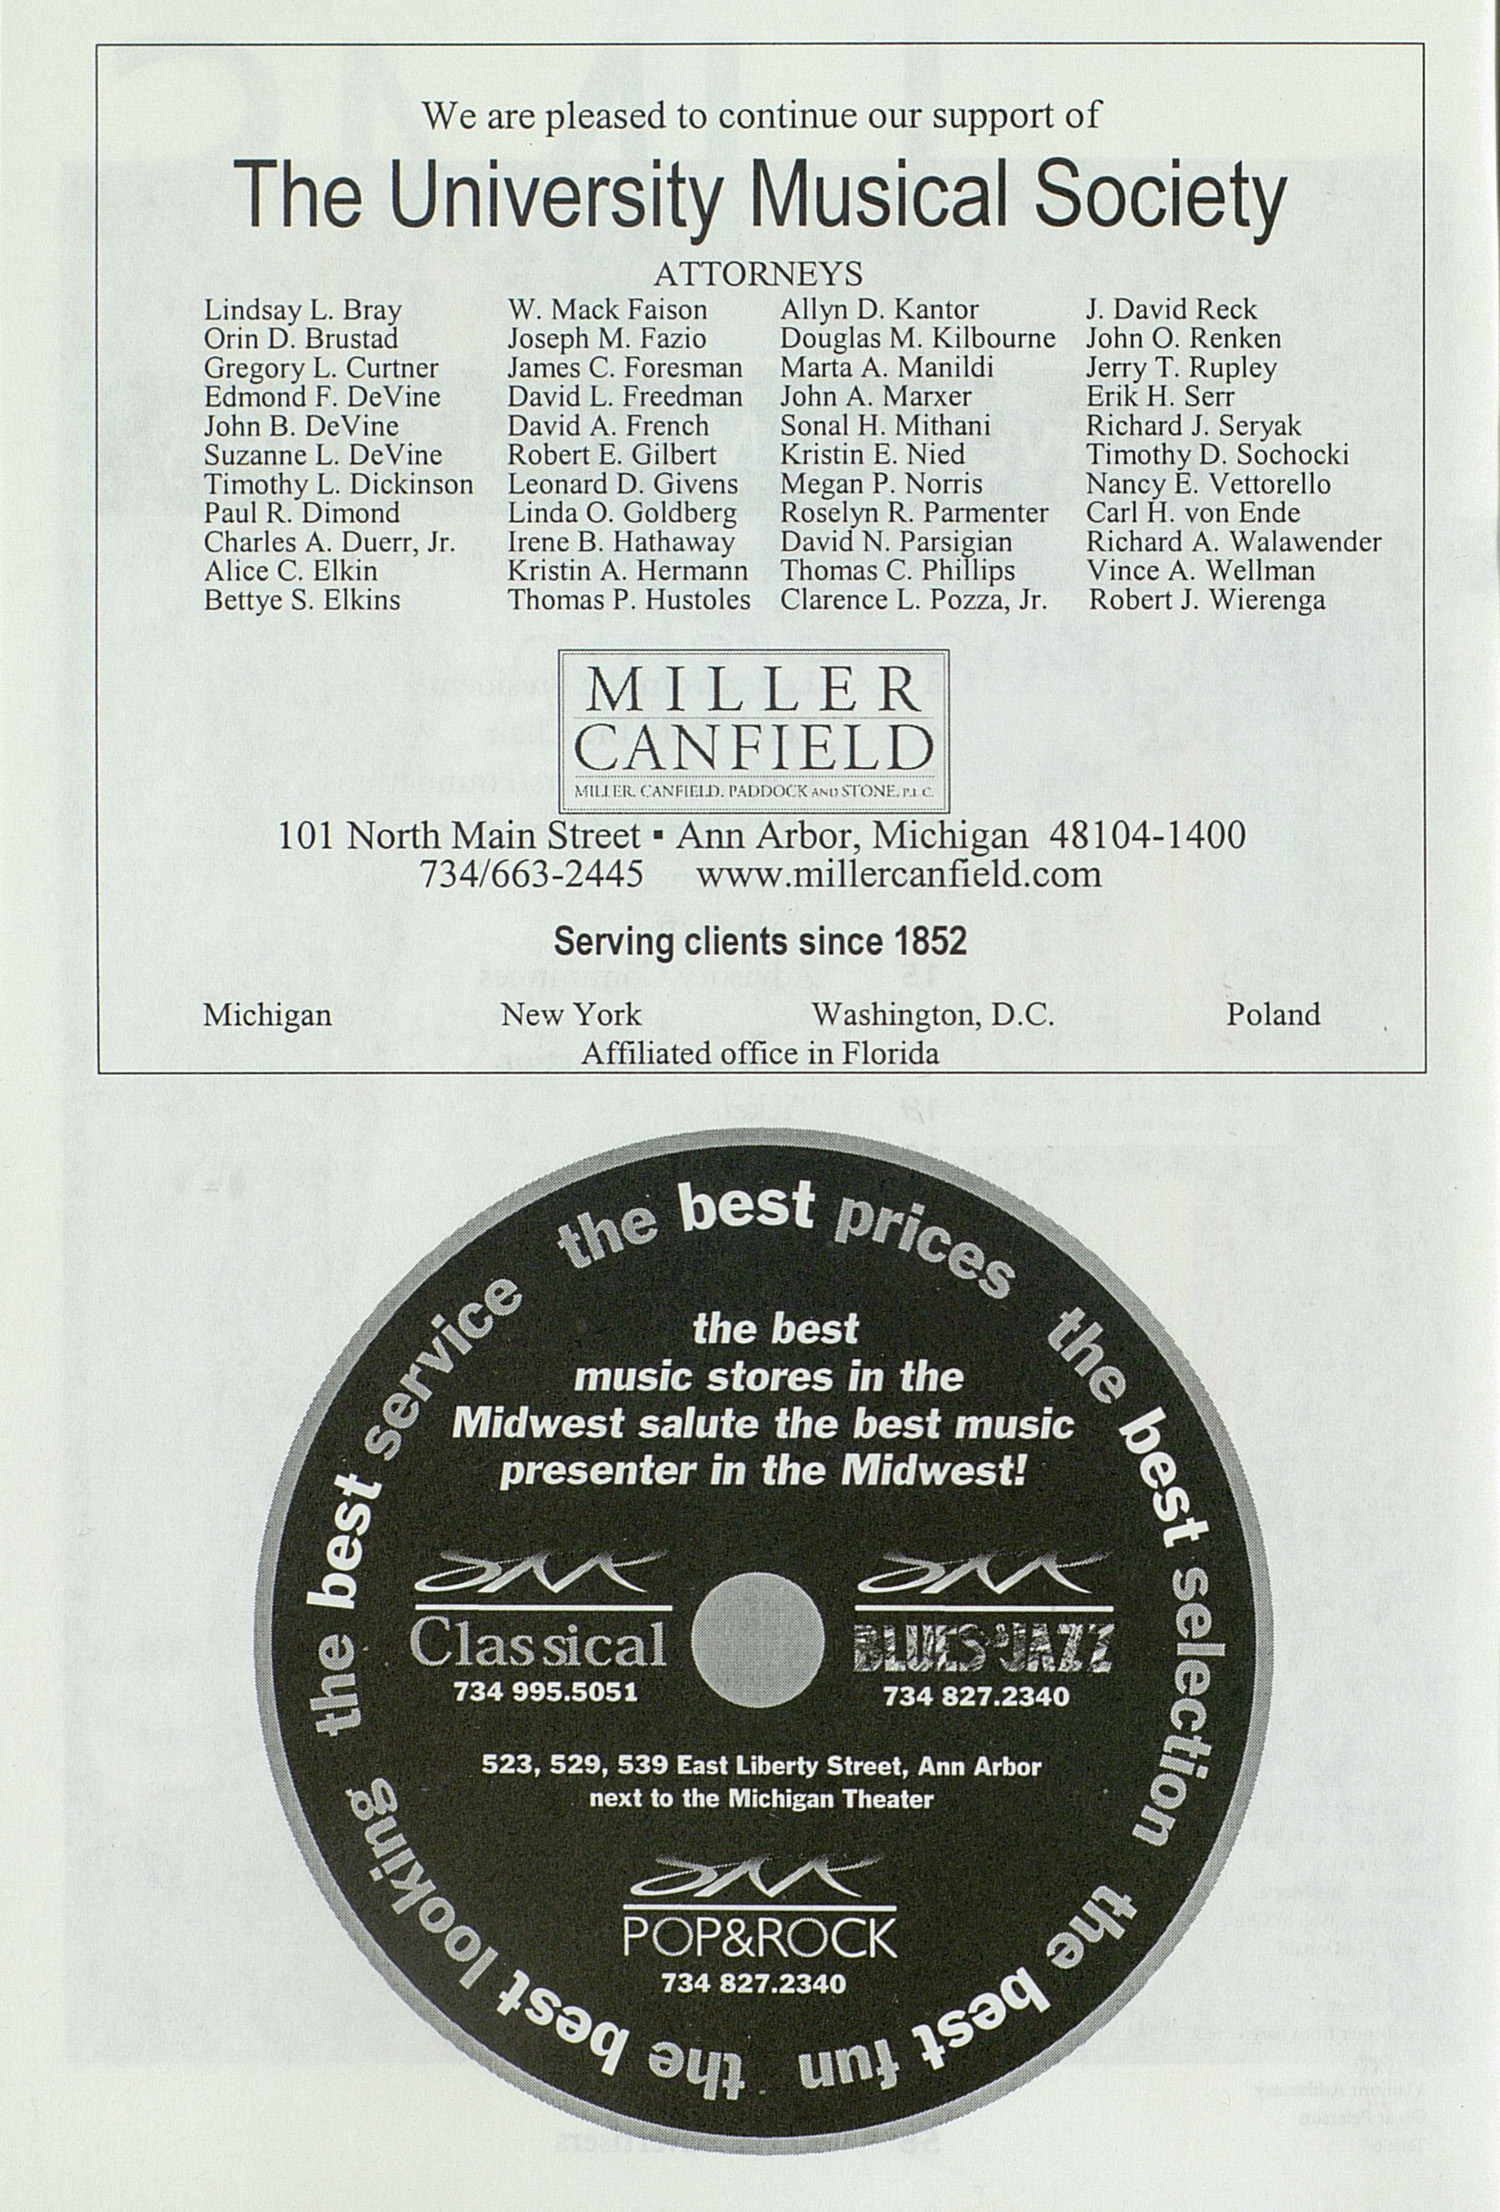 UMS Concert Program, Sunday Mar. 19 To 24: University Musical Society: 1999-2000 Winter - Sunday Mar. 19 To 24 --  image